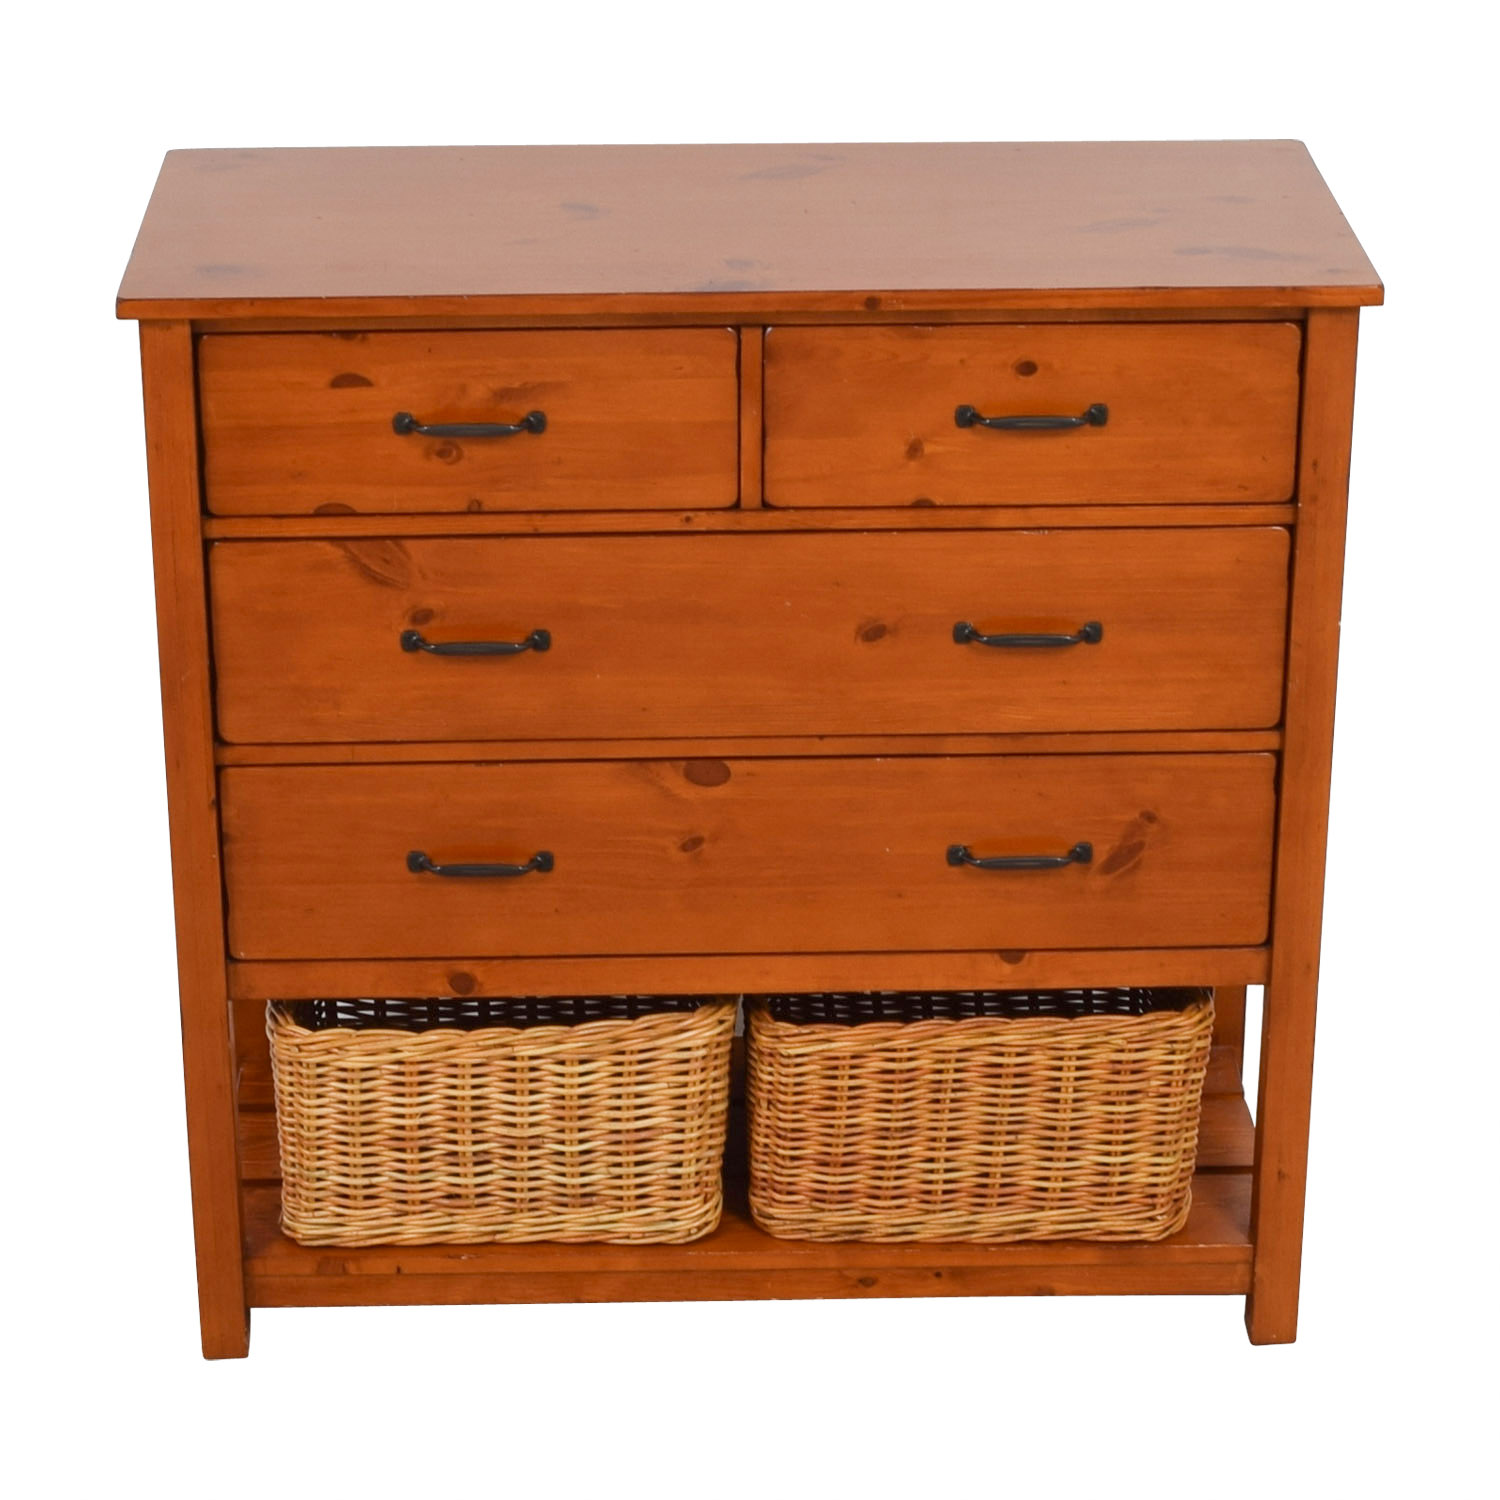 Pottery Barn Kids Camp Four-Drawer Dresser with Wicker Baskets sale